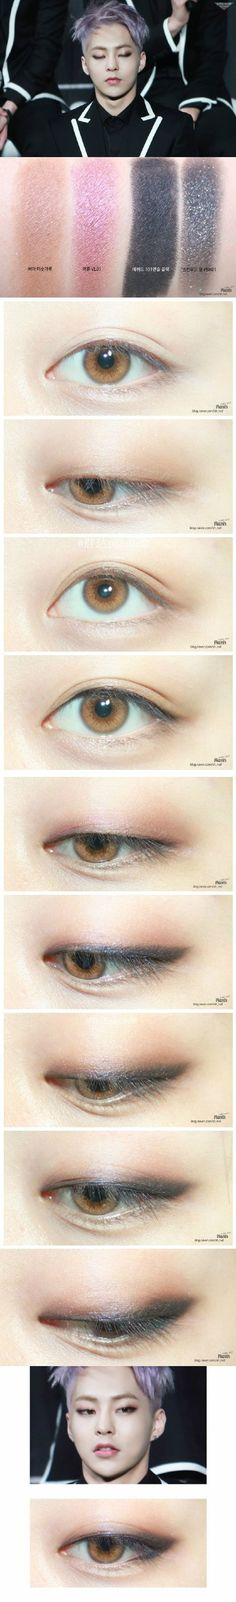 EXO Xiumin eye make up tutorial (cr.sh_rvd)